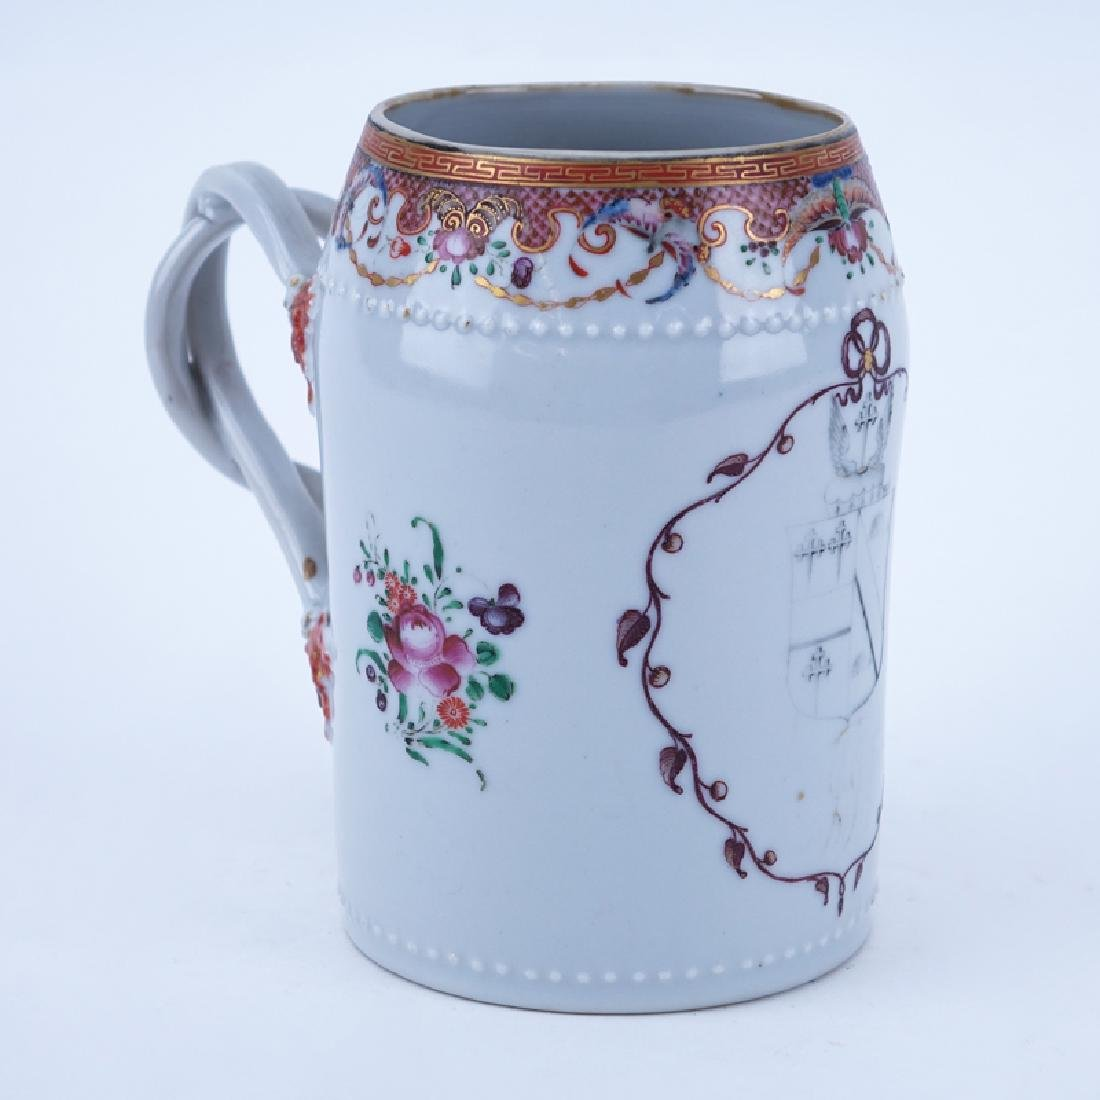 Early Chinese Export Porcelain Tankard